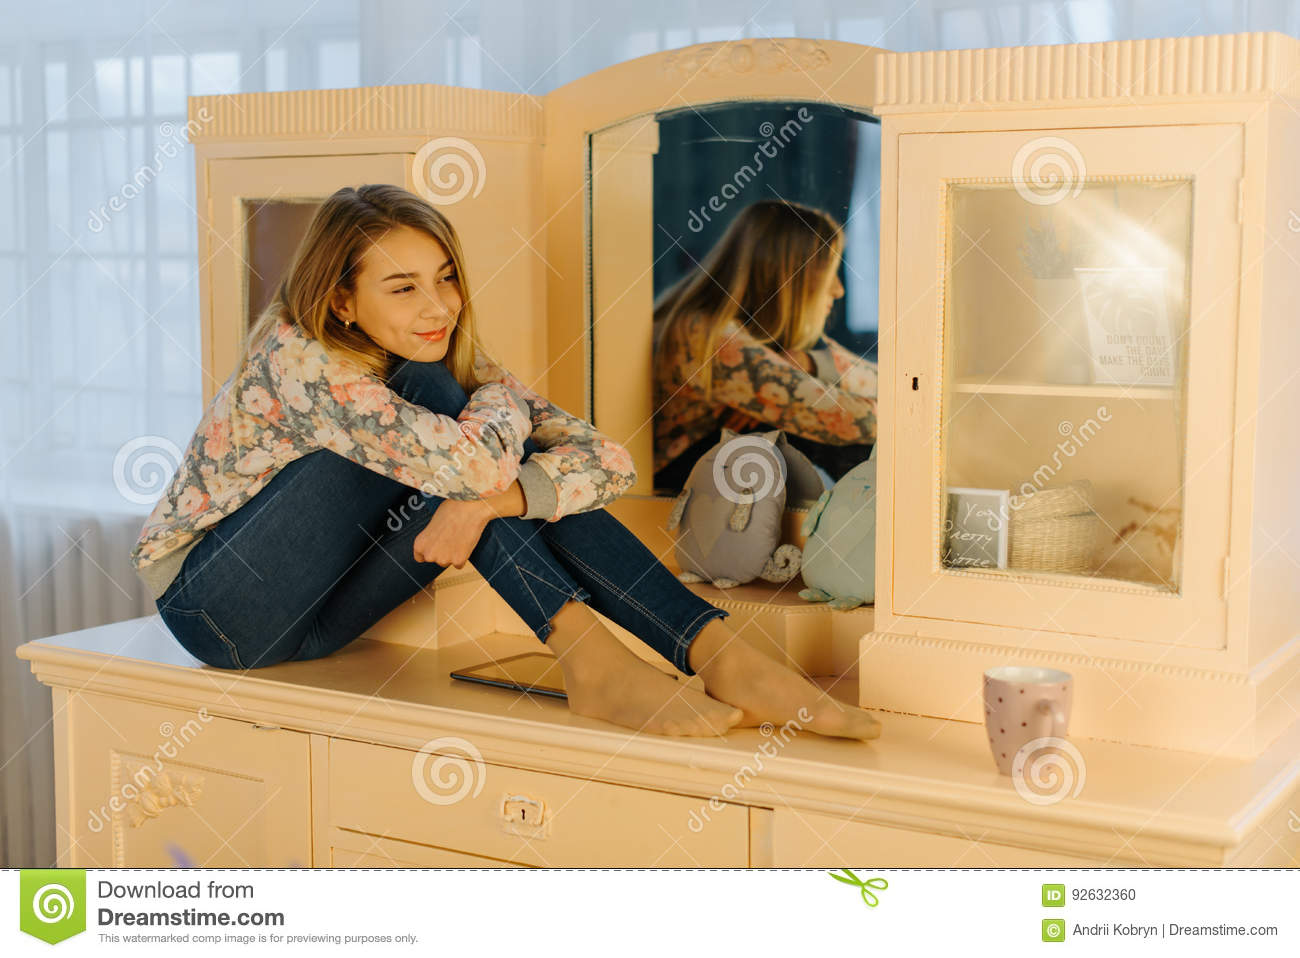 The Smiling Teenager Is Hugging Her Knees While Sitting On The Dressing Table Stock Photo Image Of Glamorous Beauty 92632360